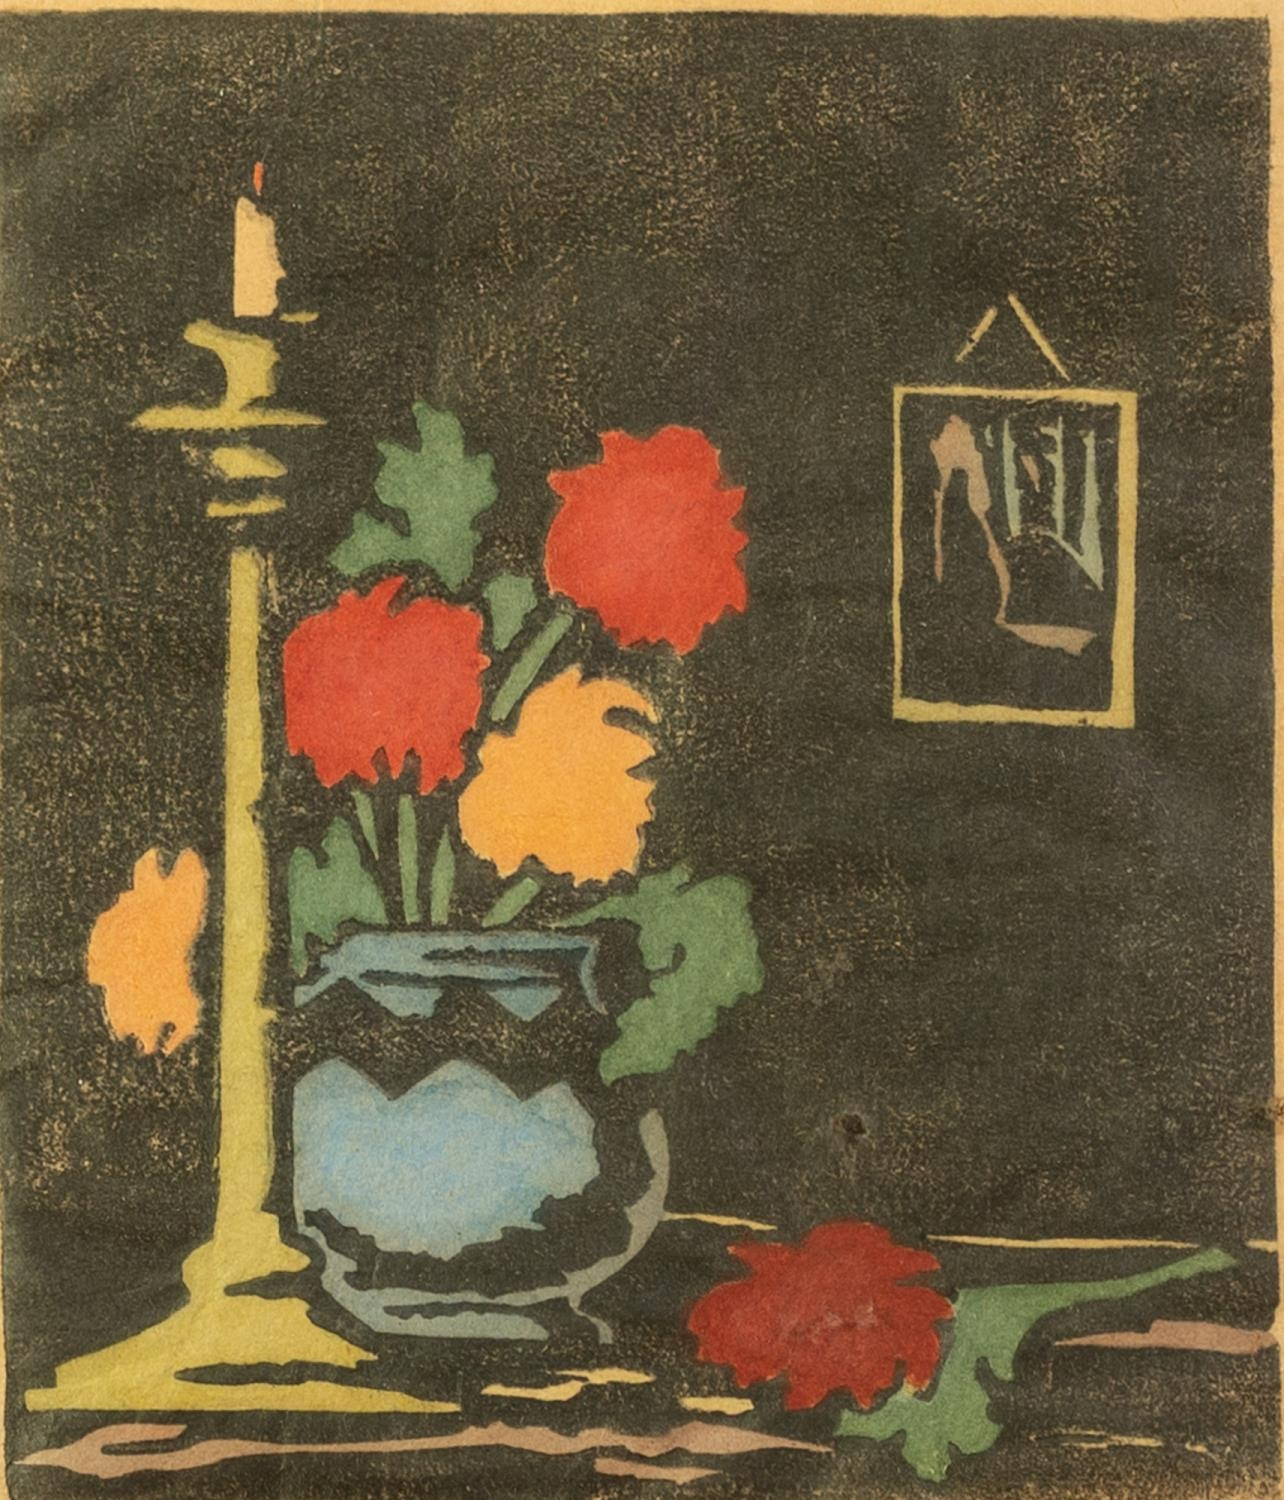 MURIAL A. NOBLE HAND COLOURED WOODBLOCK PRINT Still life with flowers in a vase Signed and dated